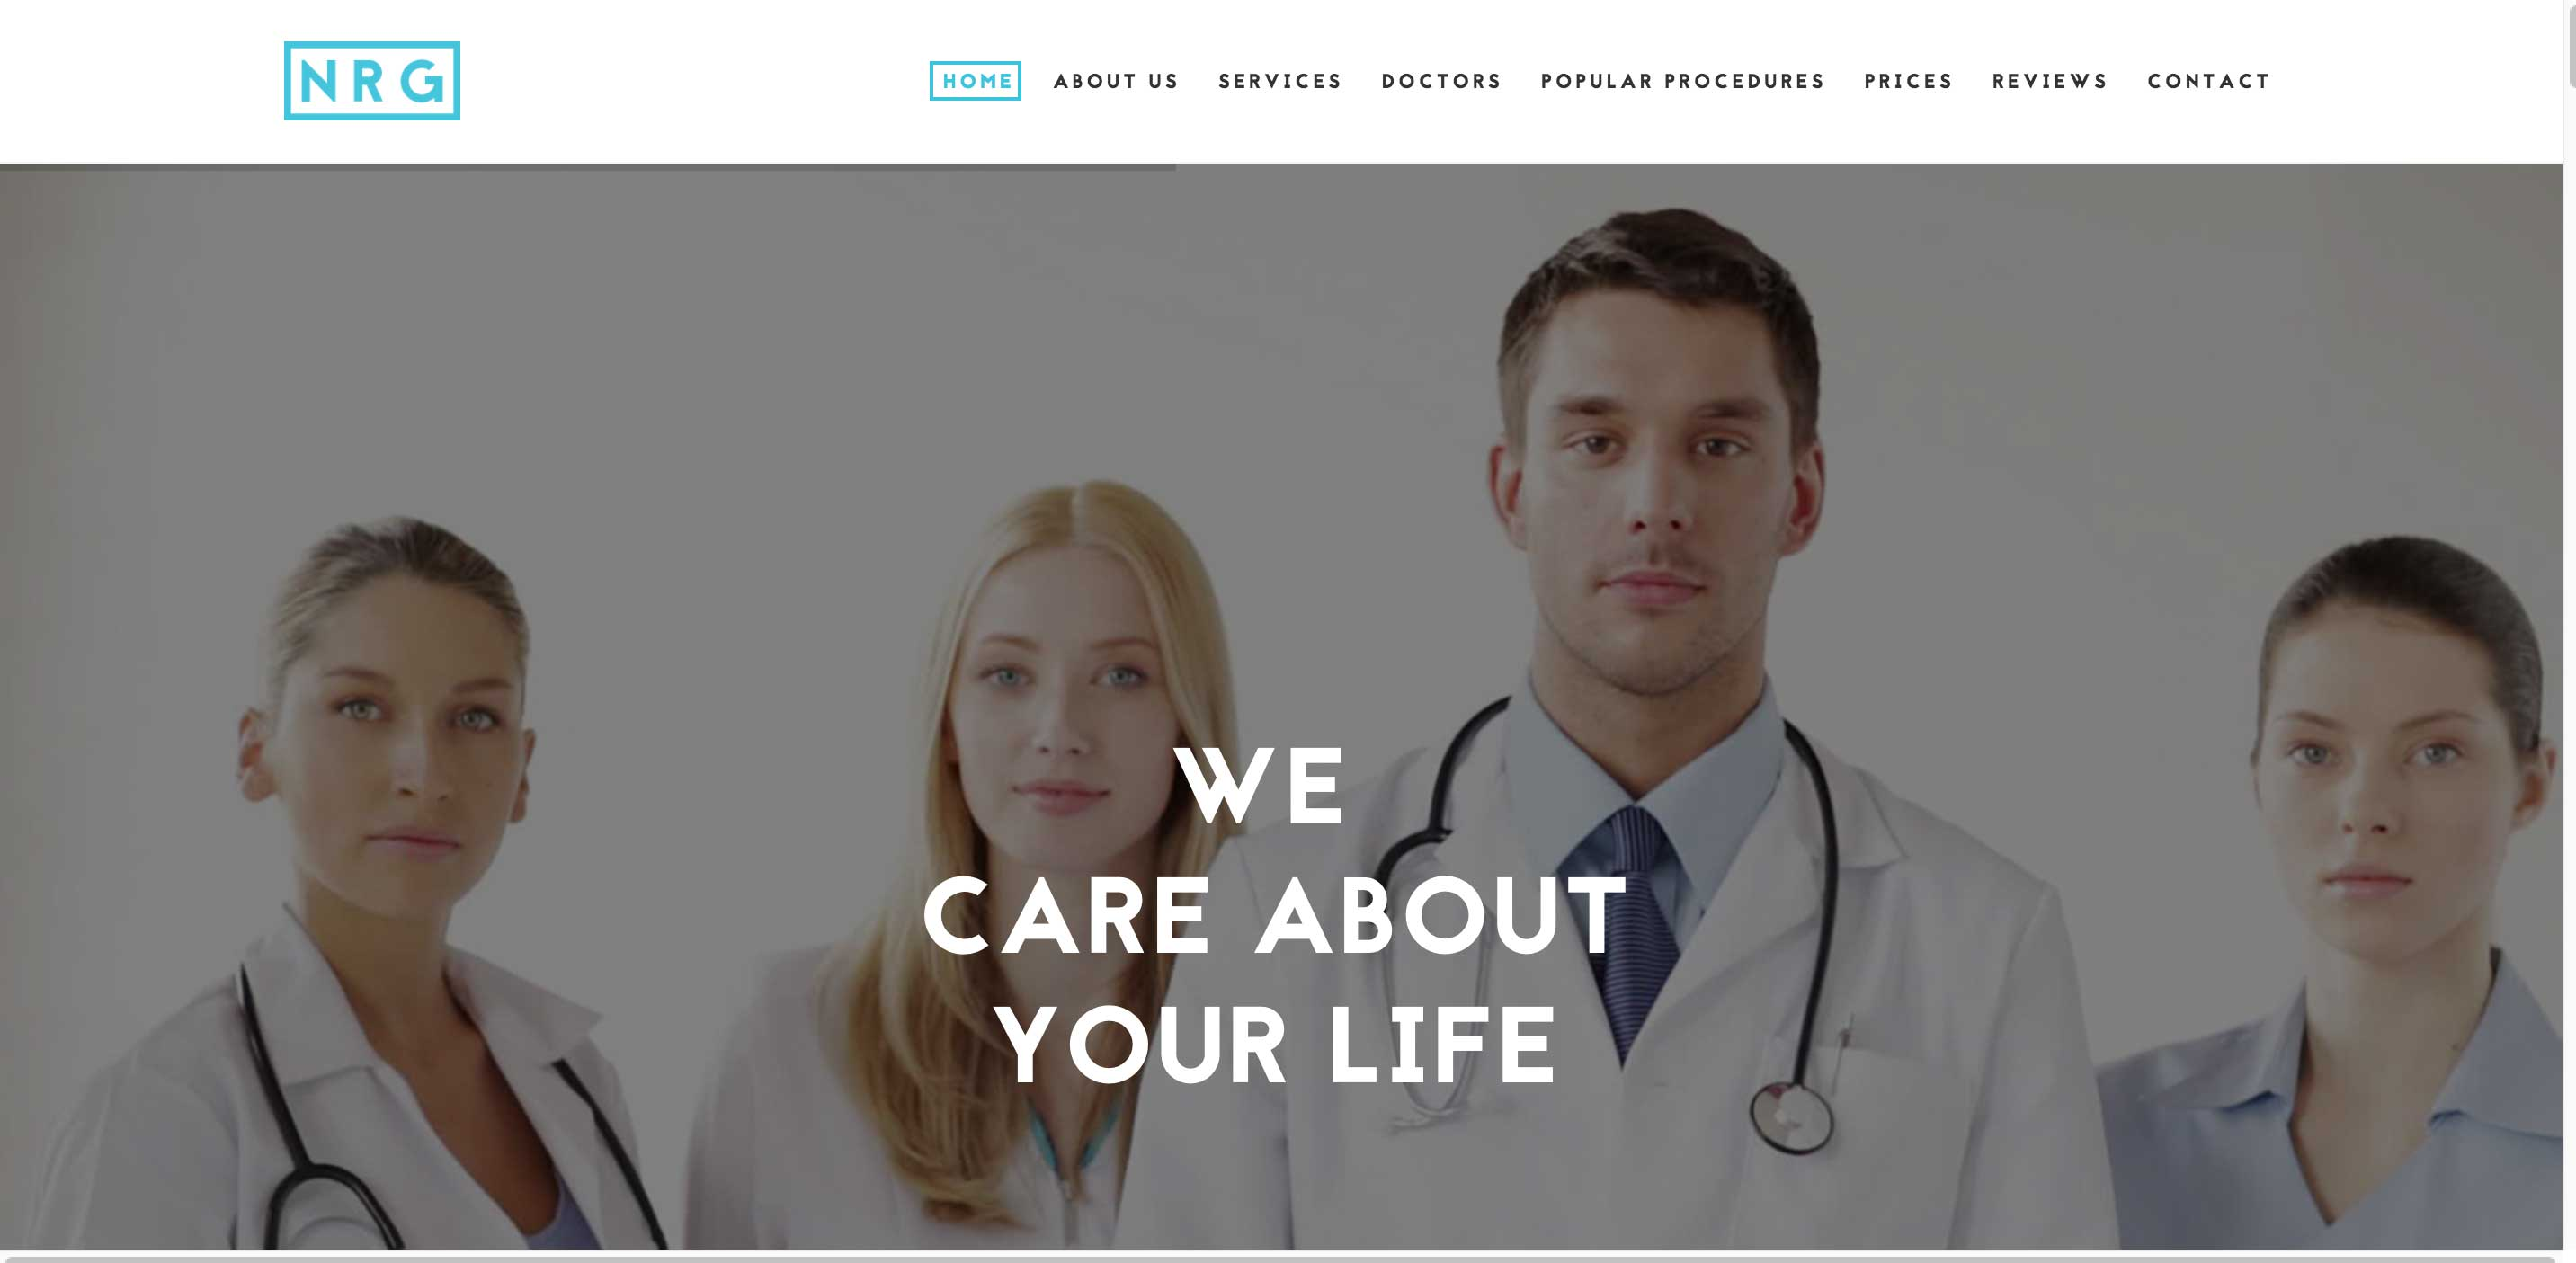 org hospital medical WordPress theme